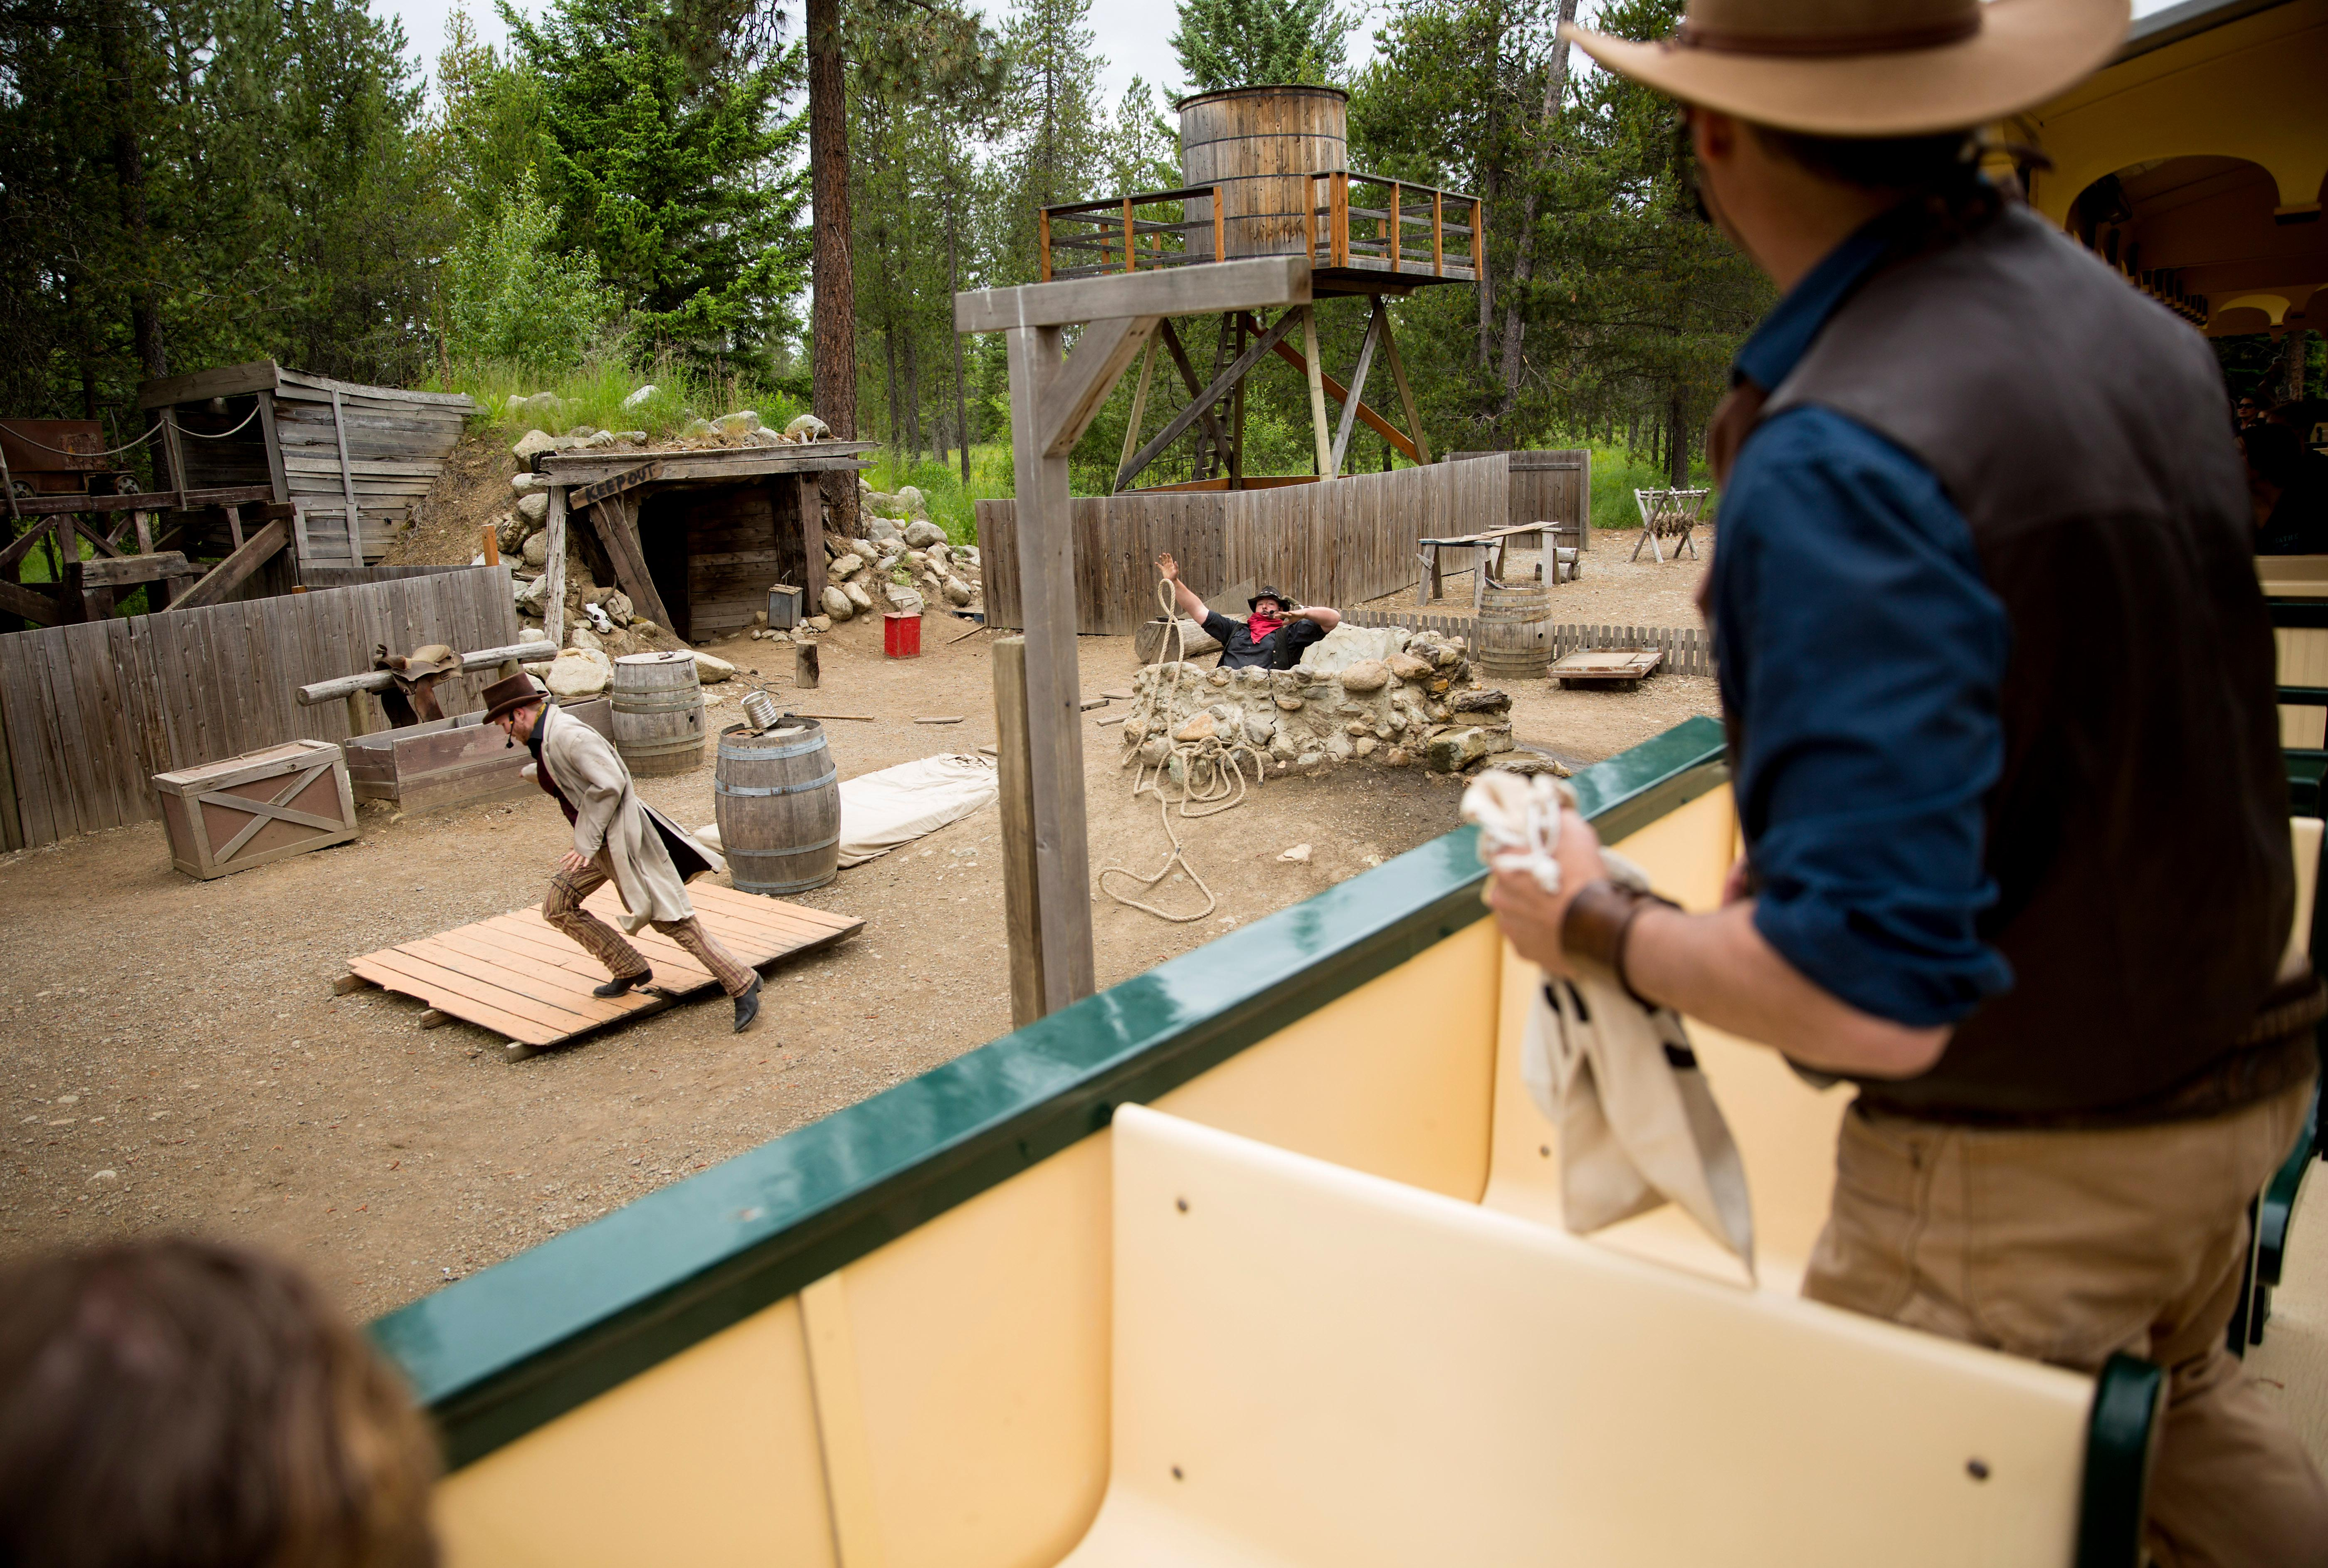 Most visits to Silverwood Theme Park are largely about the rides, but it's impossible to get whipped around, rolled over and ricocheted all day without wanting a little break. Stop by one of Silverwood's world-class shows to give your body a break and dazzle your mind with a little theme park magic. (Image: Sy Bean / Seattle Refined)